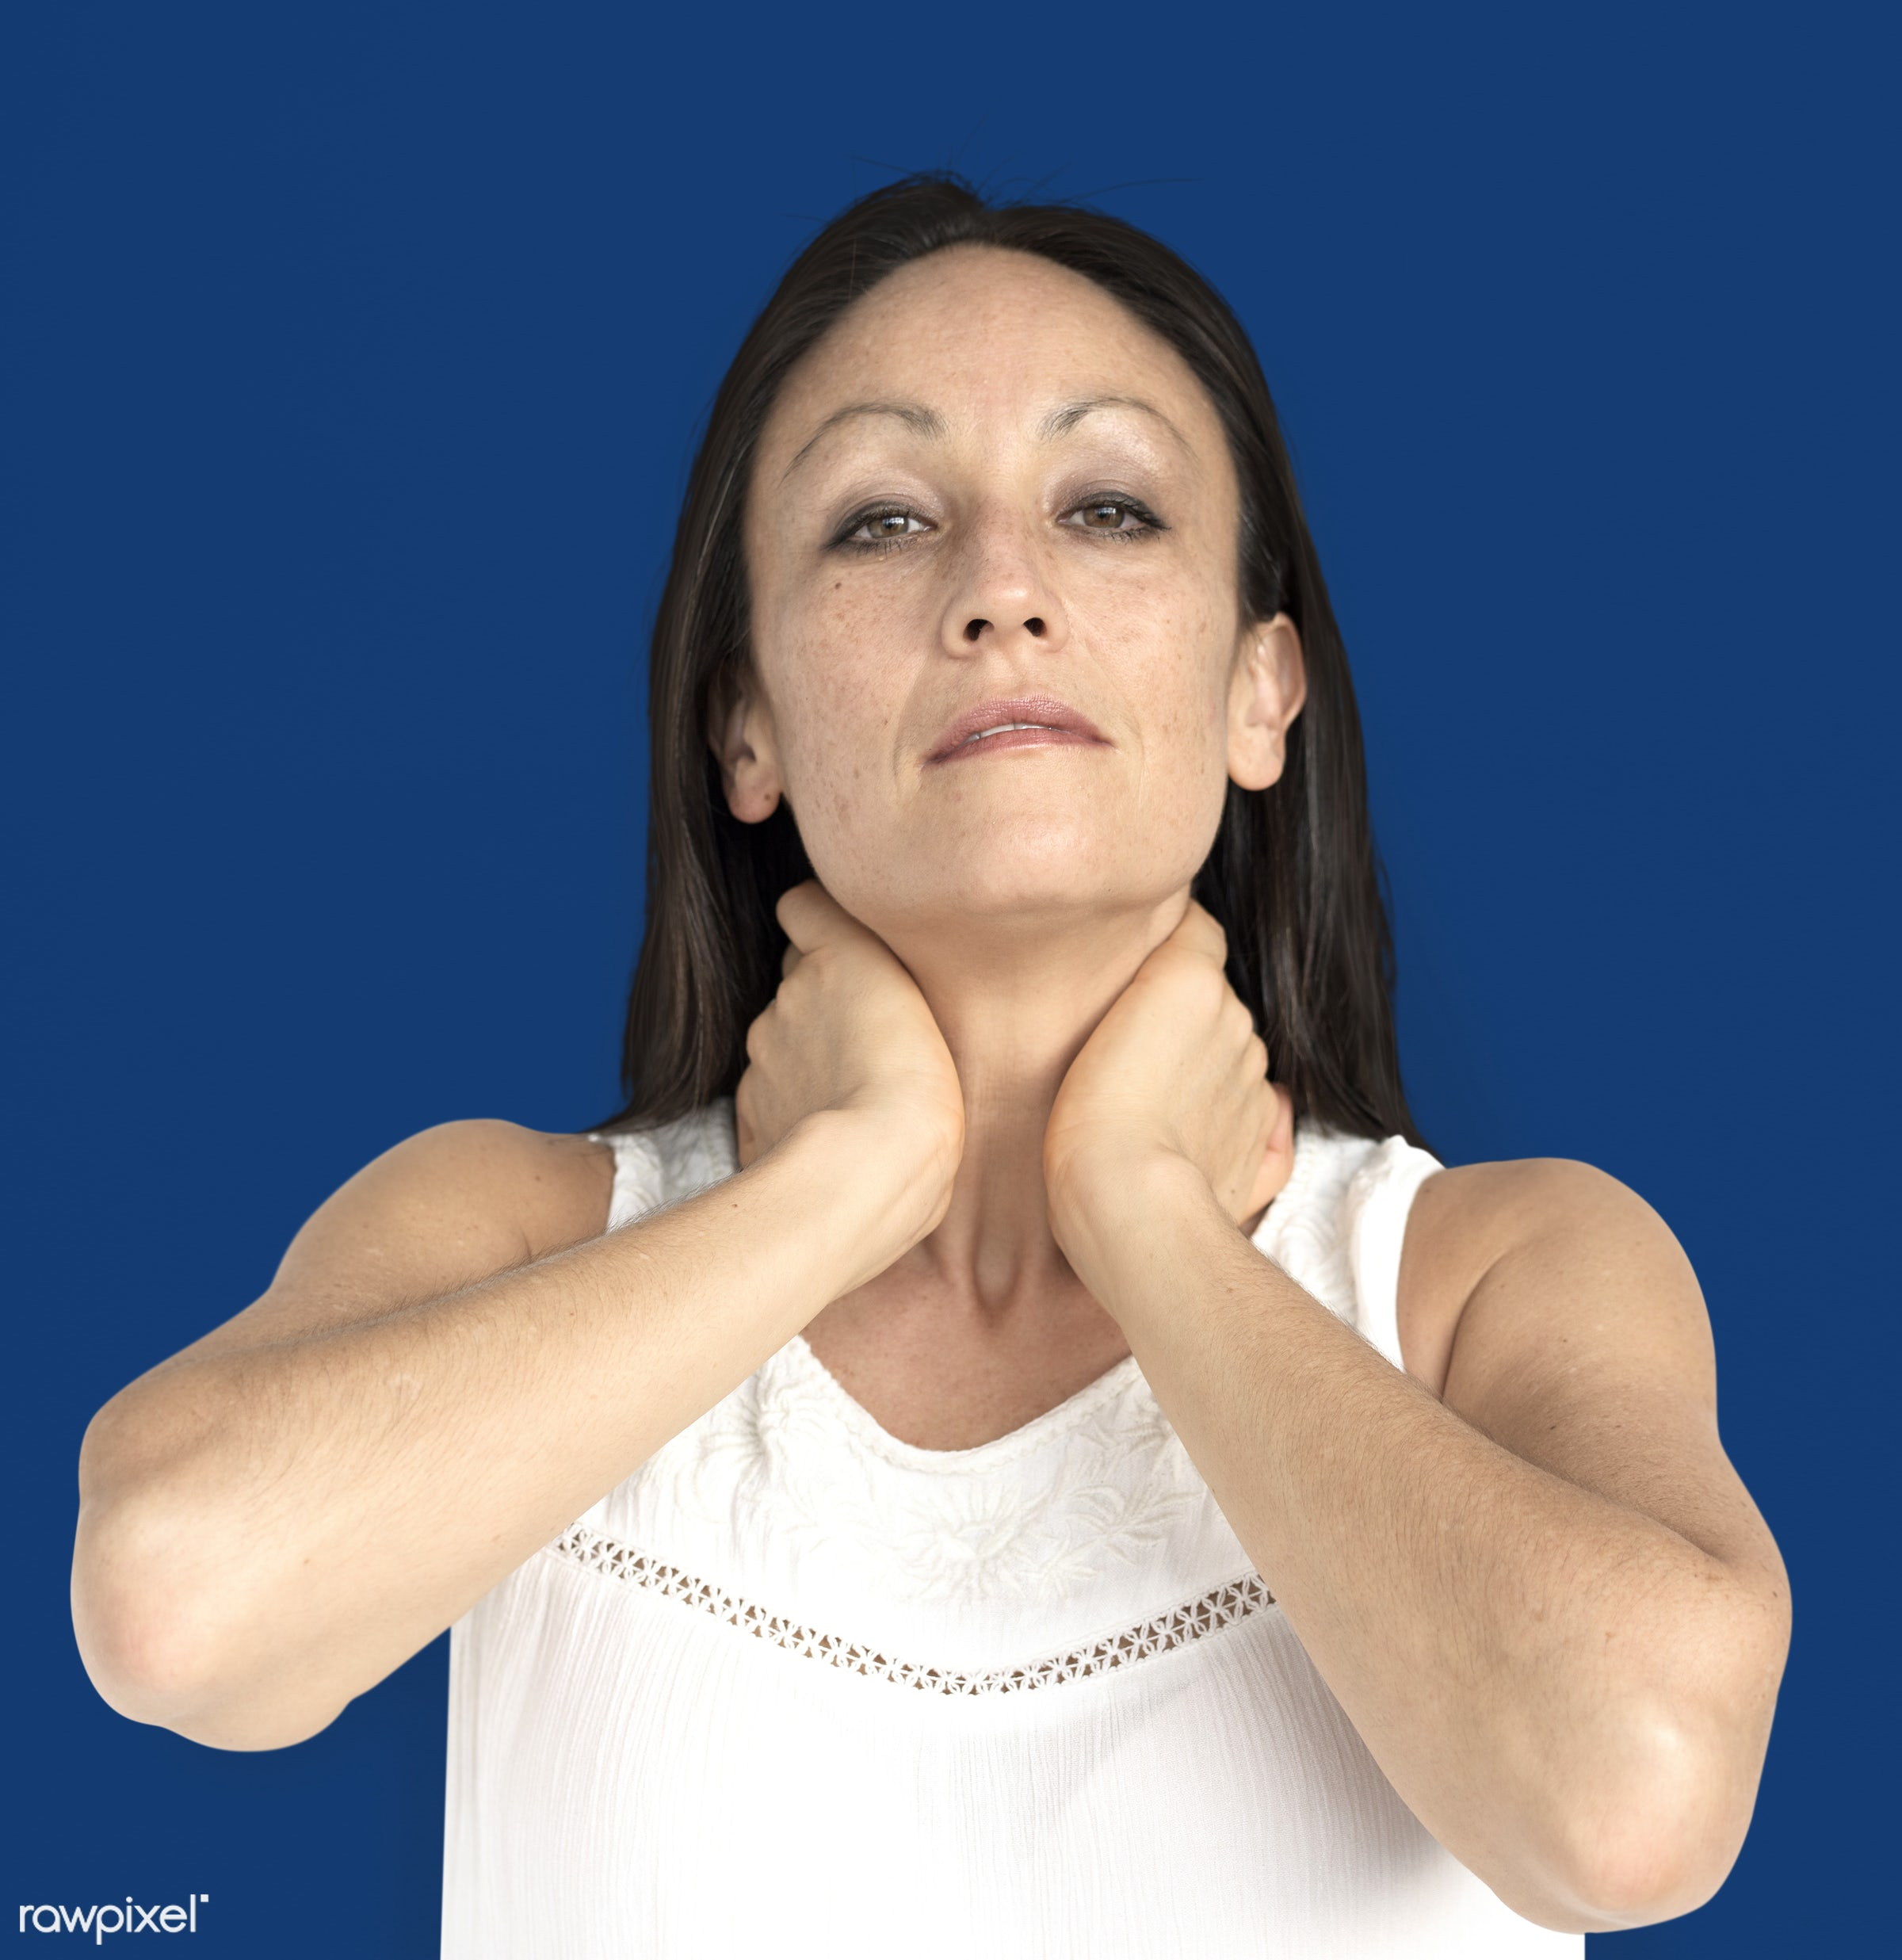 studio, model, person, neck pain, people, race, style, solo, woman, lifestyle, casual, feminism, isolated, gesture, posing,...